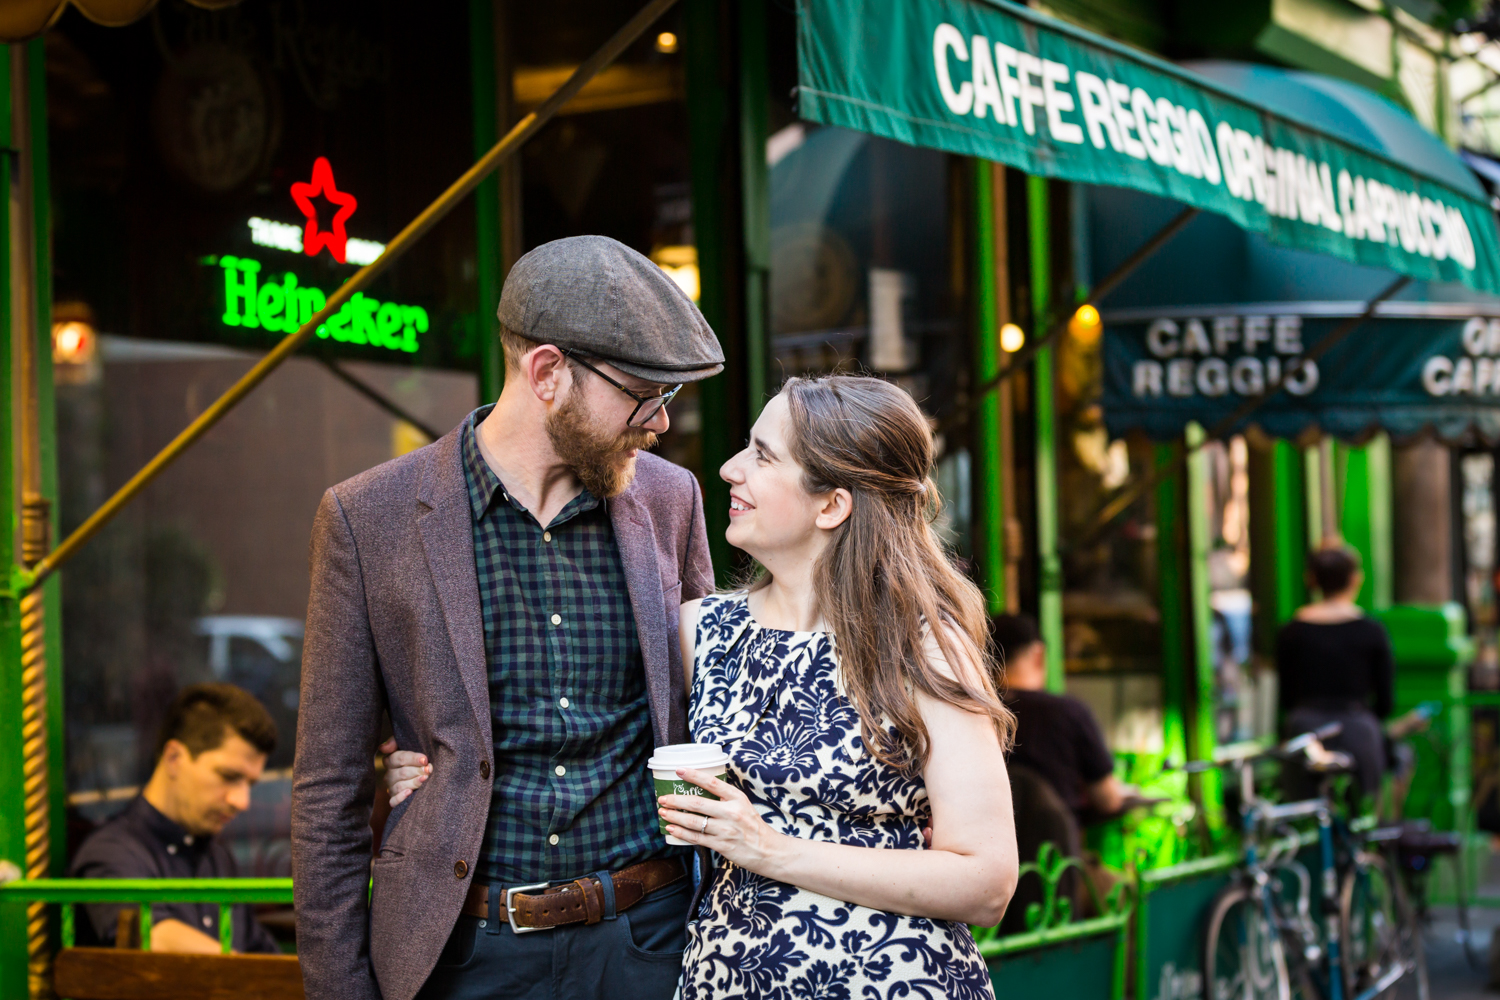 Couple in front of Caffe Reggio on MacDougal Street for a Greenwich Village engagement portrait